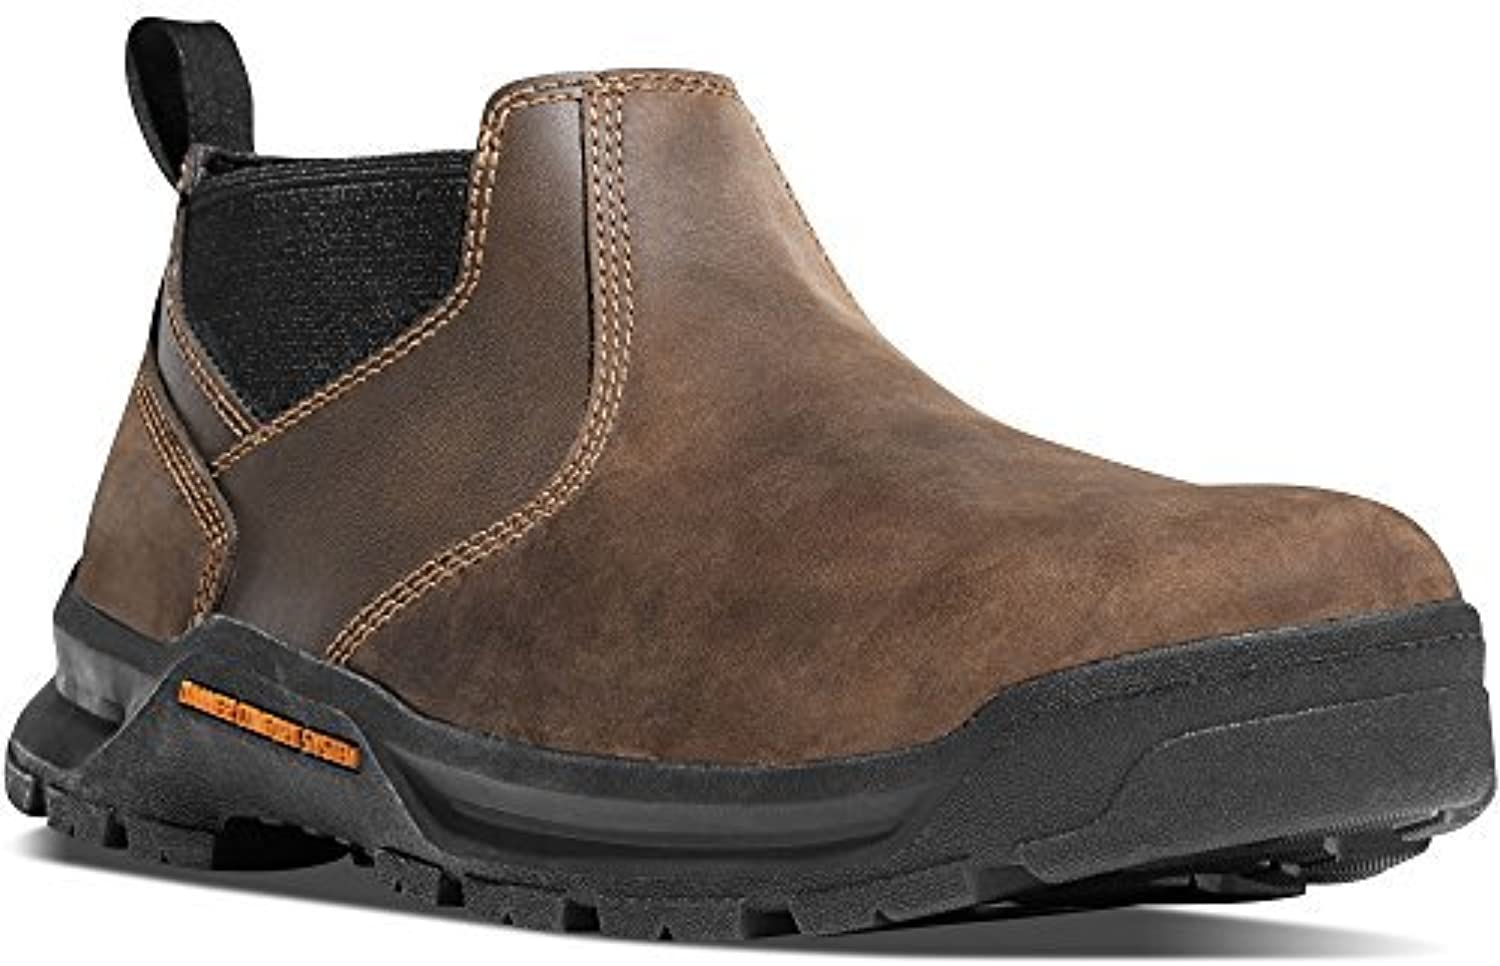 Danner Crafter Romeo 3  Brown (12441) Hot Work Boots Oil & Slip Resistant   Electrical Hazard Boot Leather